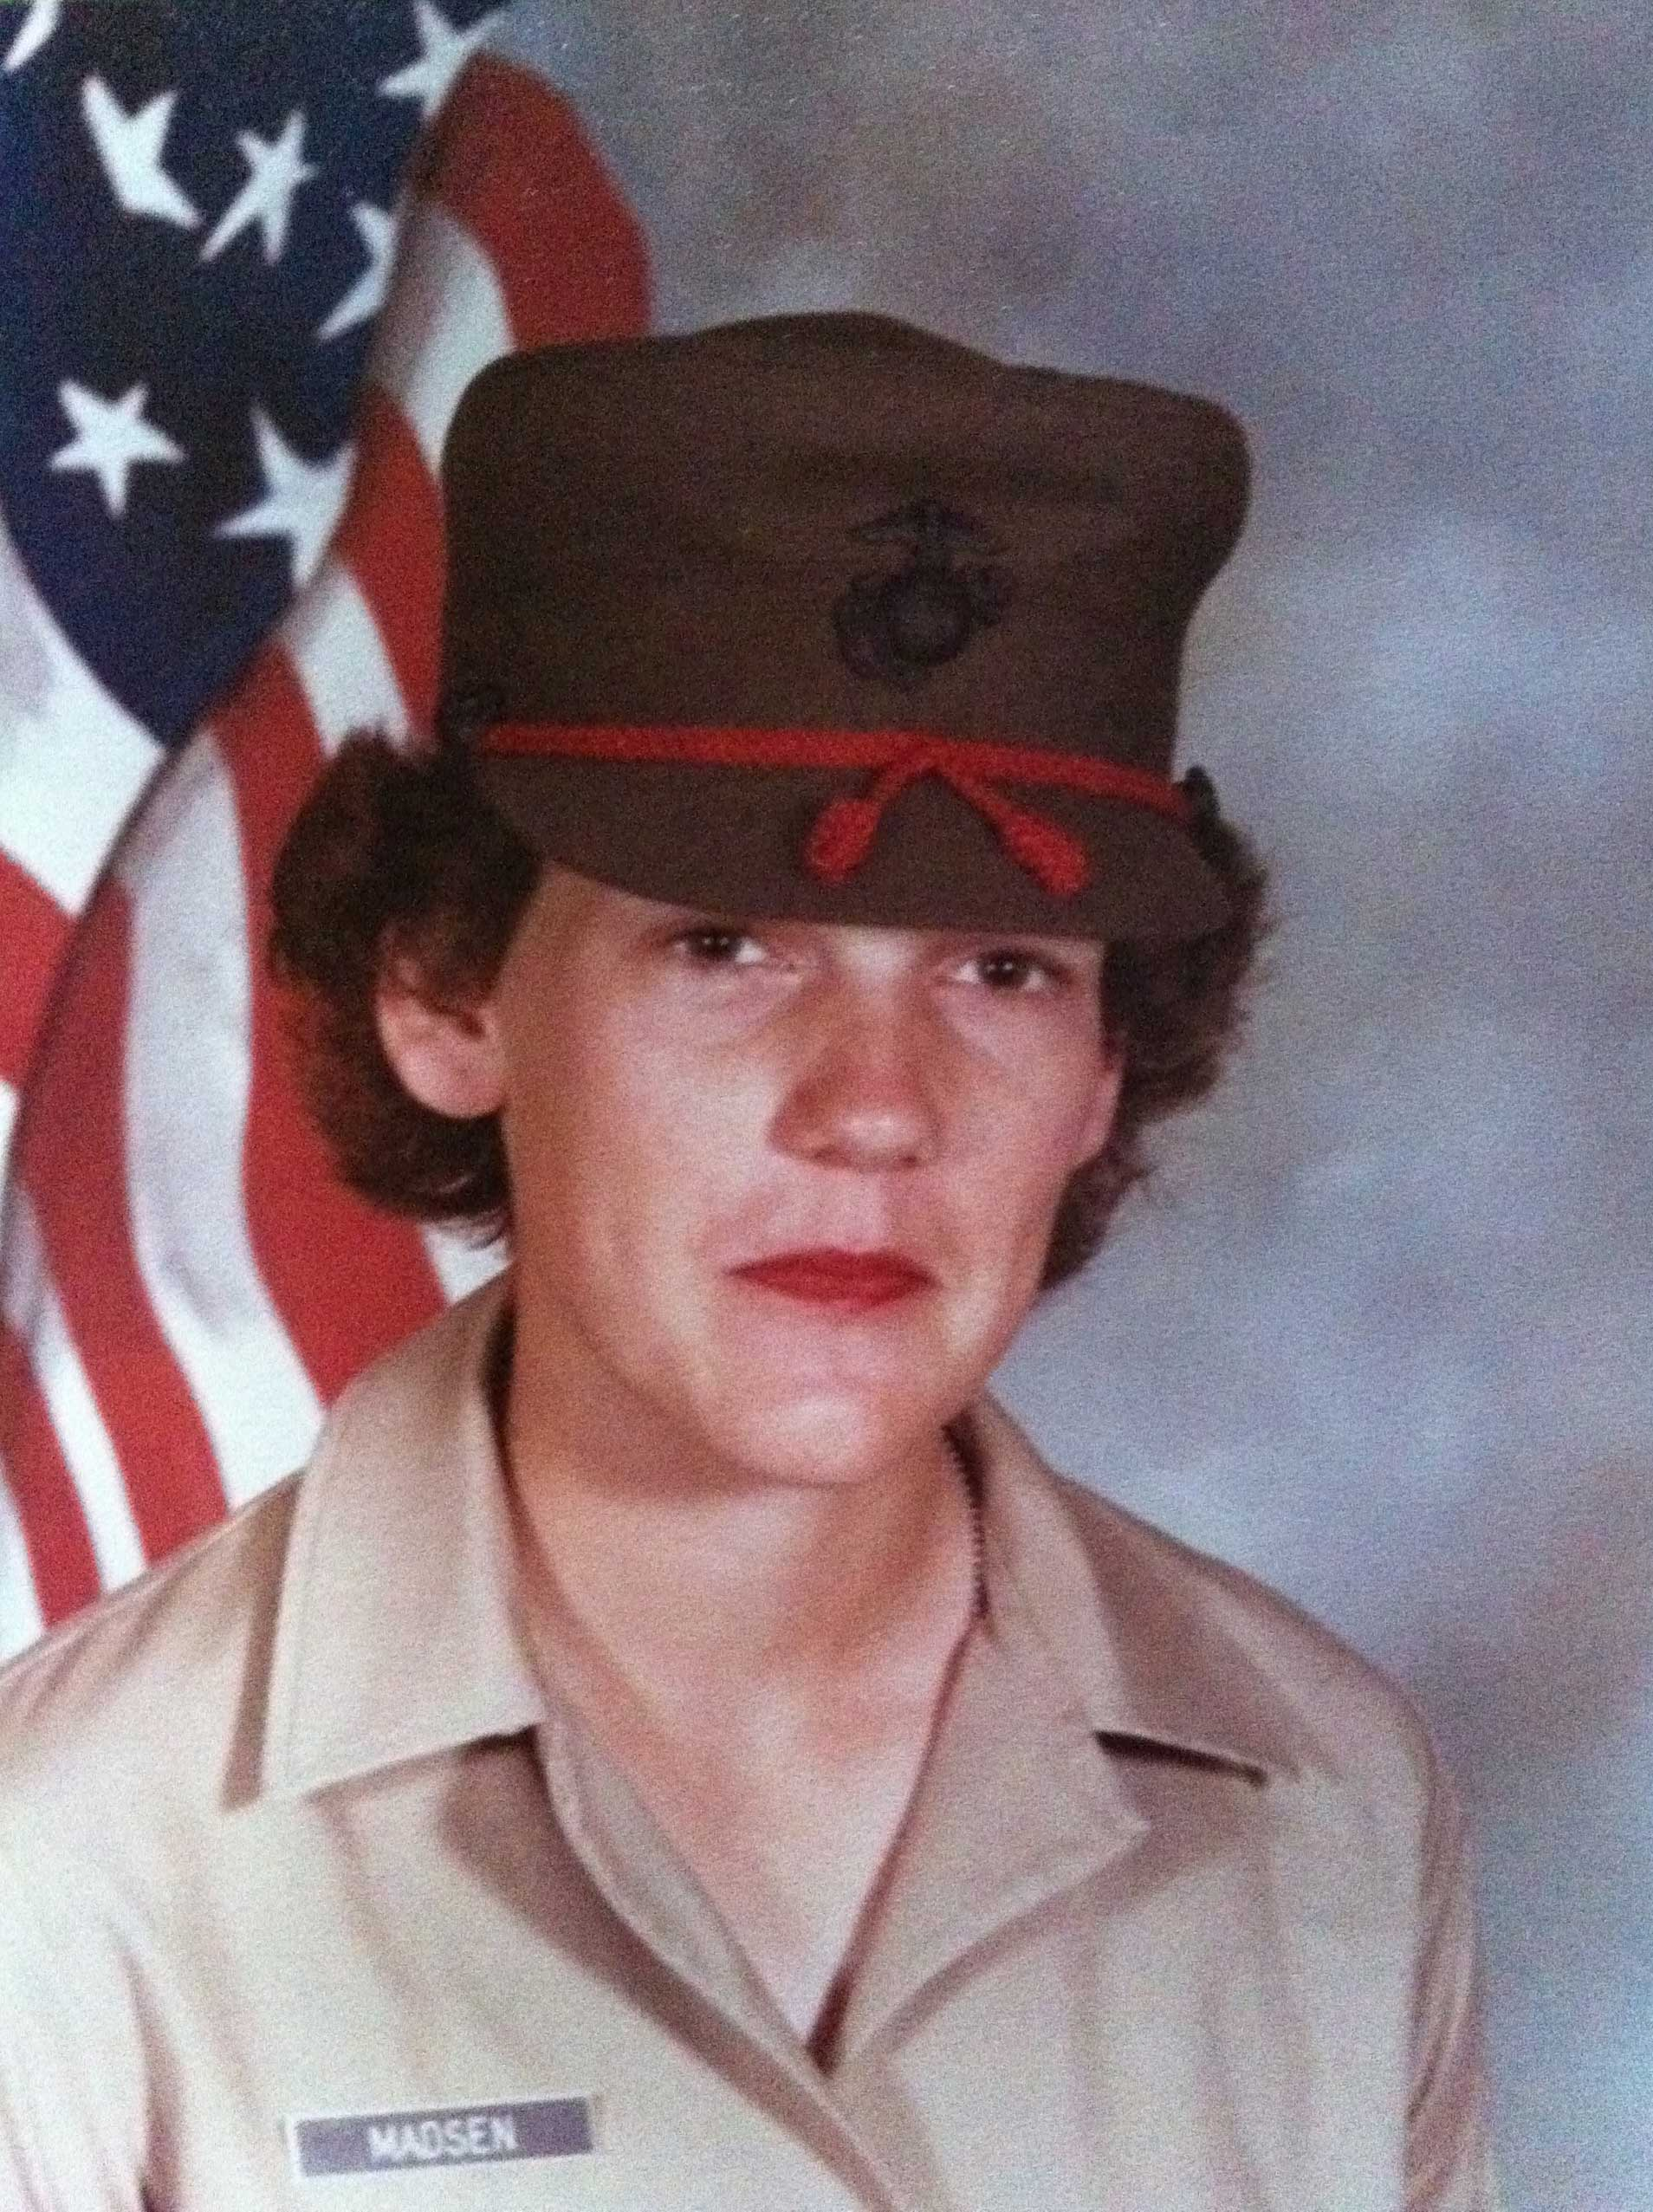 Angela Madsen's platoon yearbook photo, which was taken at Marine Corps Recruit Depot Parris Island in South Carolina, 1979.